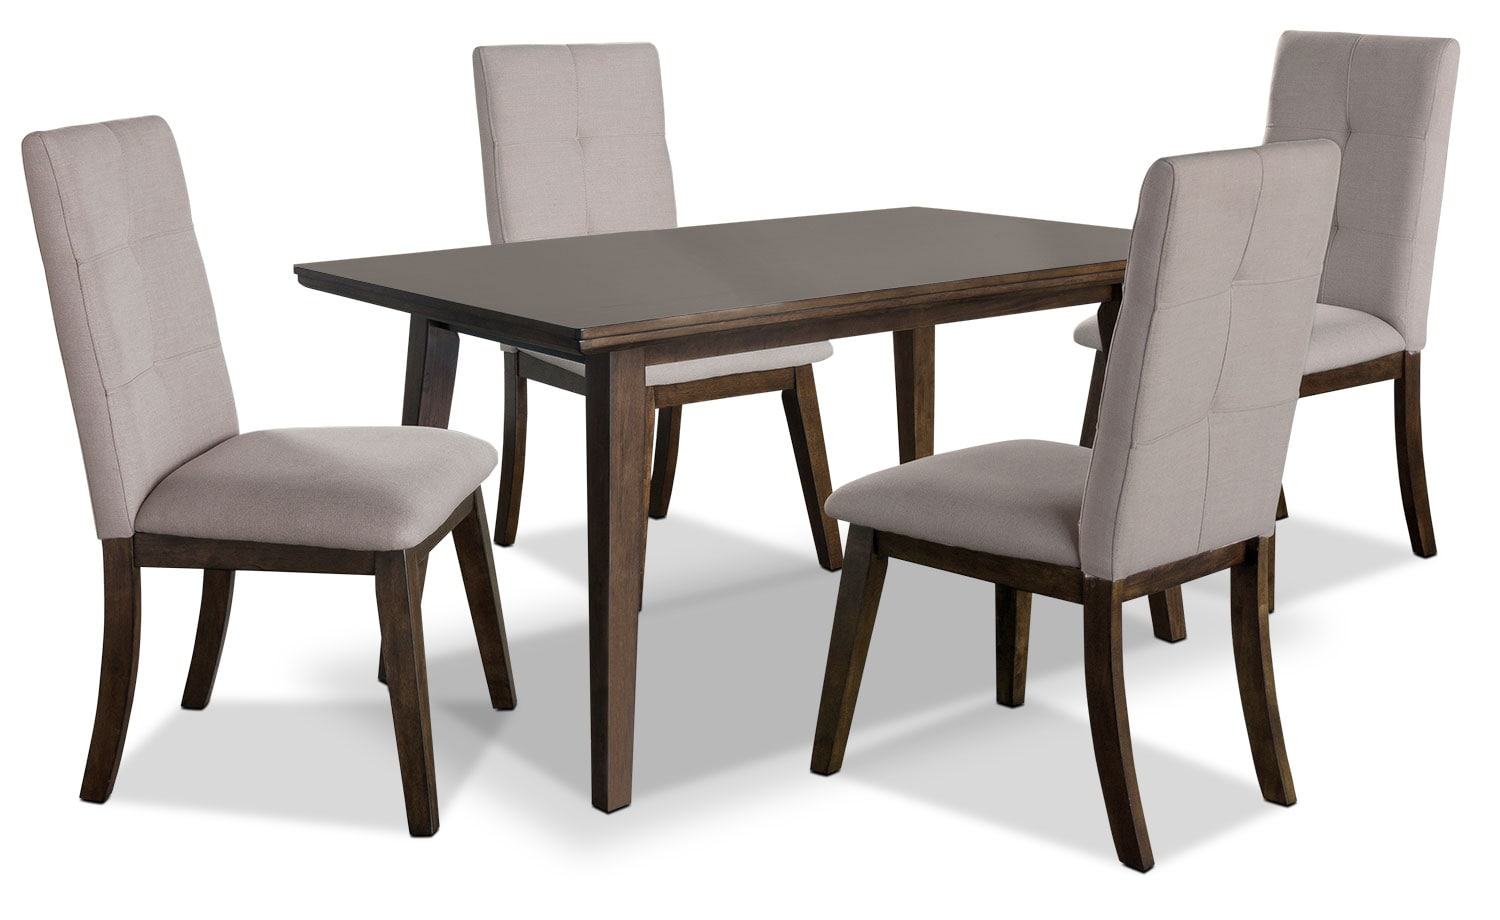 Chelsea 5-Piece Dining Table Package with Beige Chairs